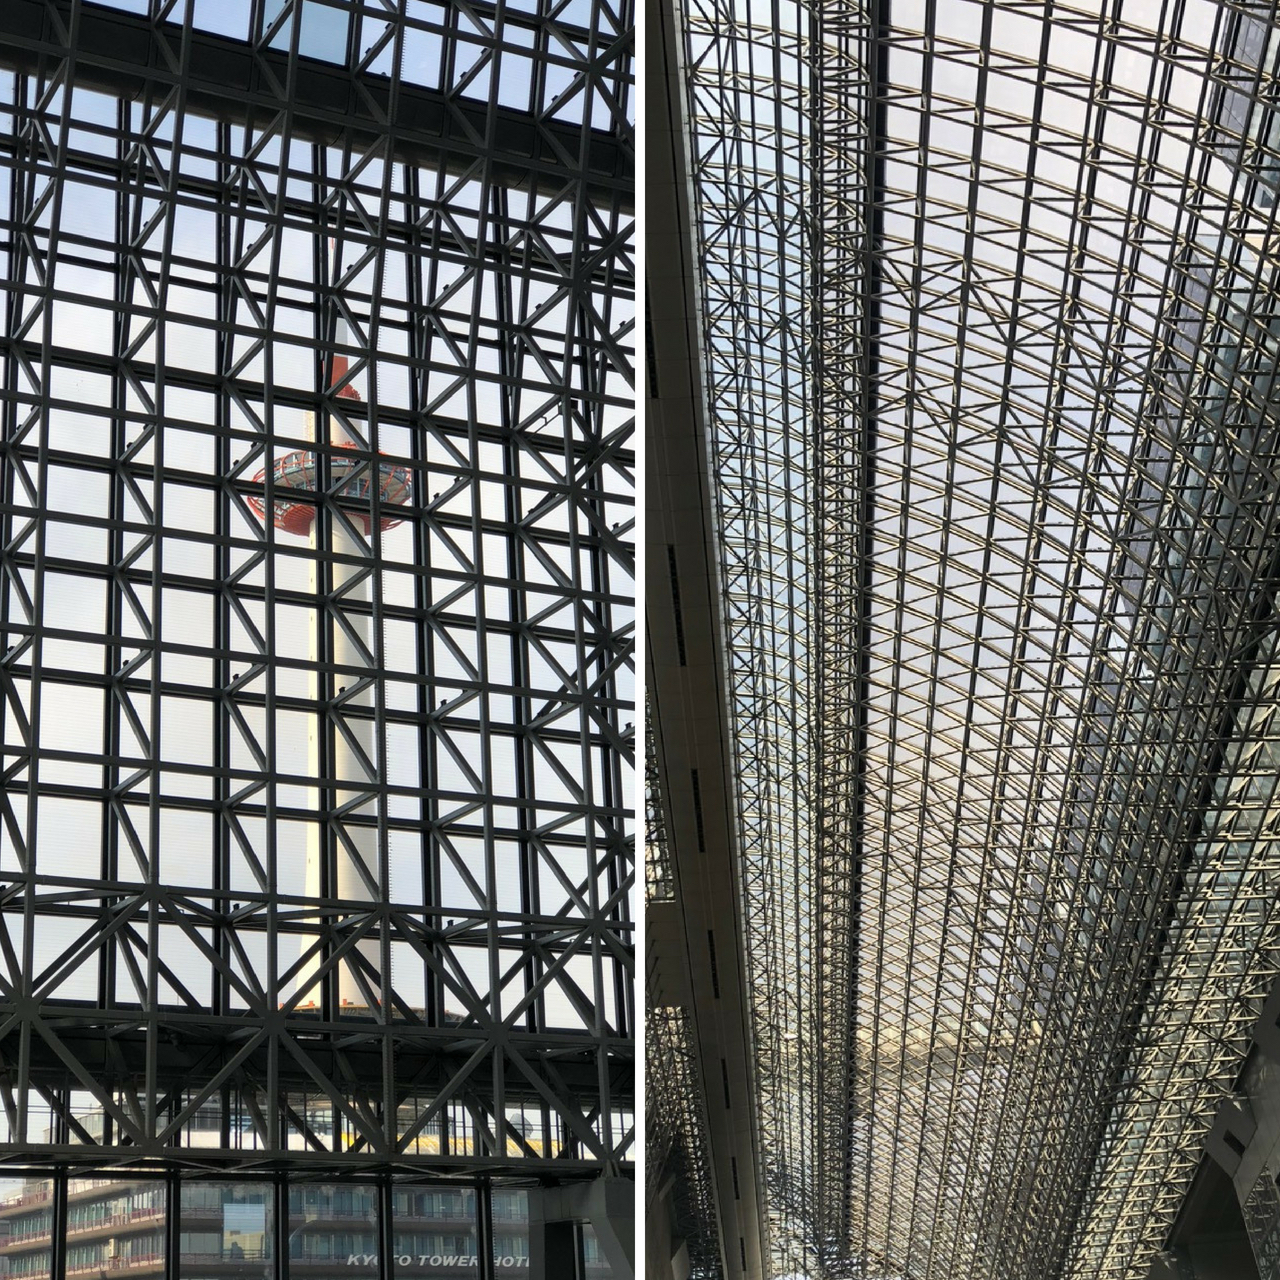 Kyoto Station is the epitome of the modern Japanese architecture